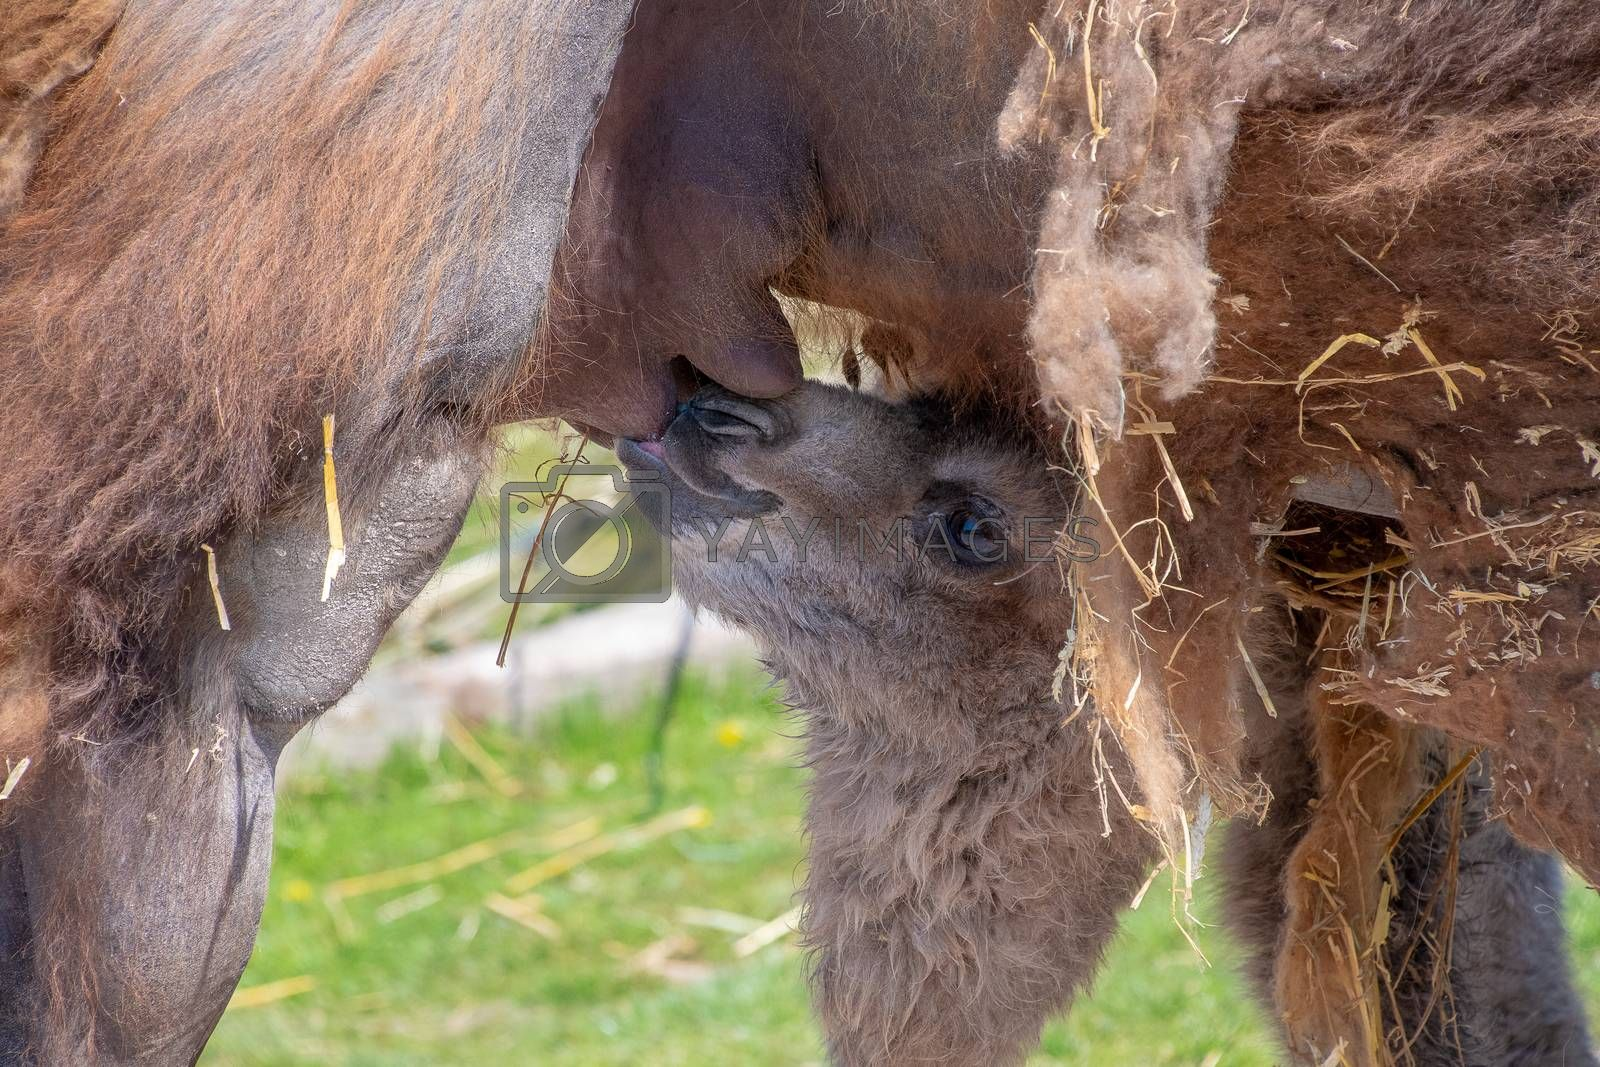 Baby Bactrian Camel feeding from the mother